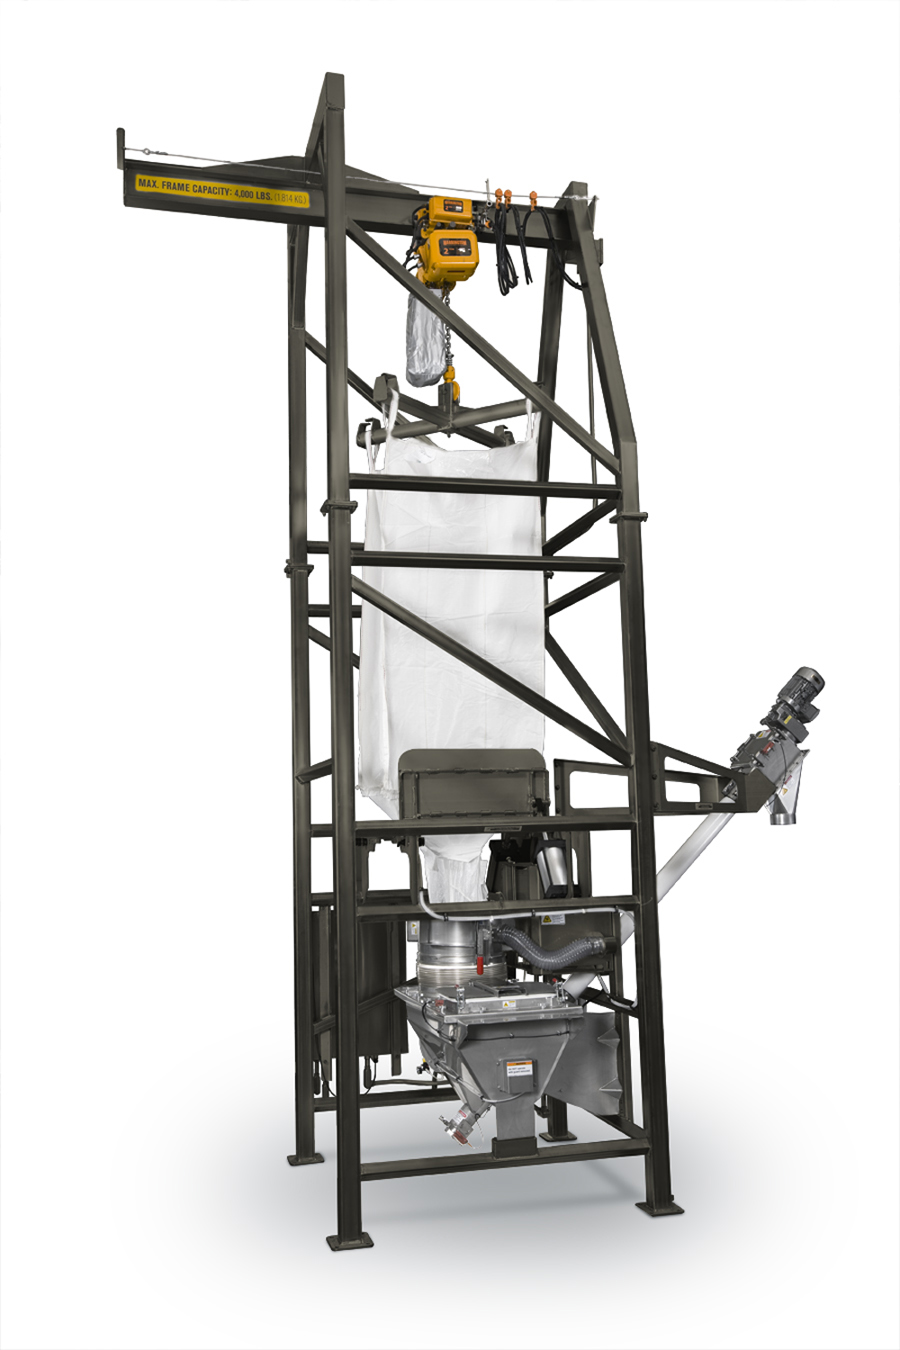 Bulk Bag Unloader Provides Closed-cycle Dust Containment; Protects Personnel from Migrant Dust, Improves Bag Spouting Efficiency, and Protects Process Operations from Contaminants